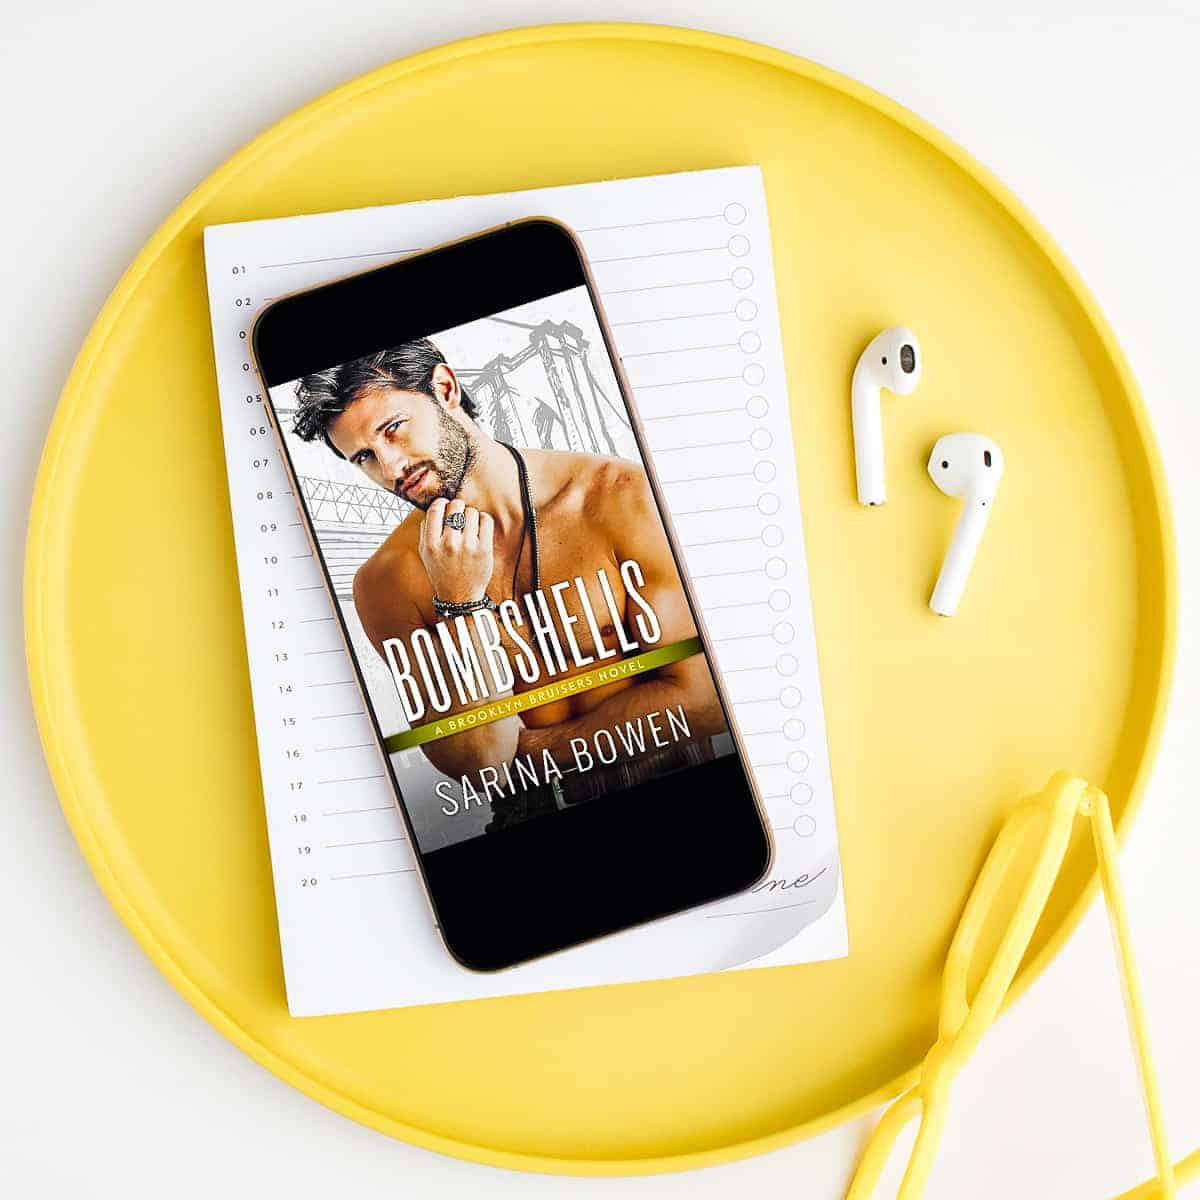 Bombshells by Sarina Bowen is the 8th Brooklyn Bruisers book and delivers more of our favorite endearing characters and a sweet friends-to-lovers romance!